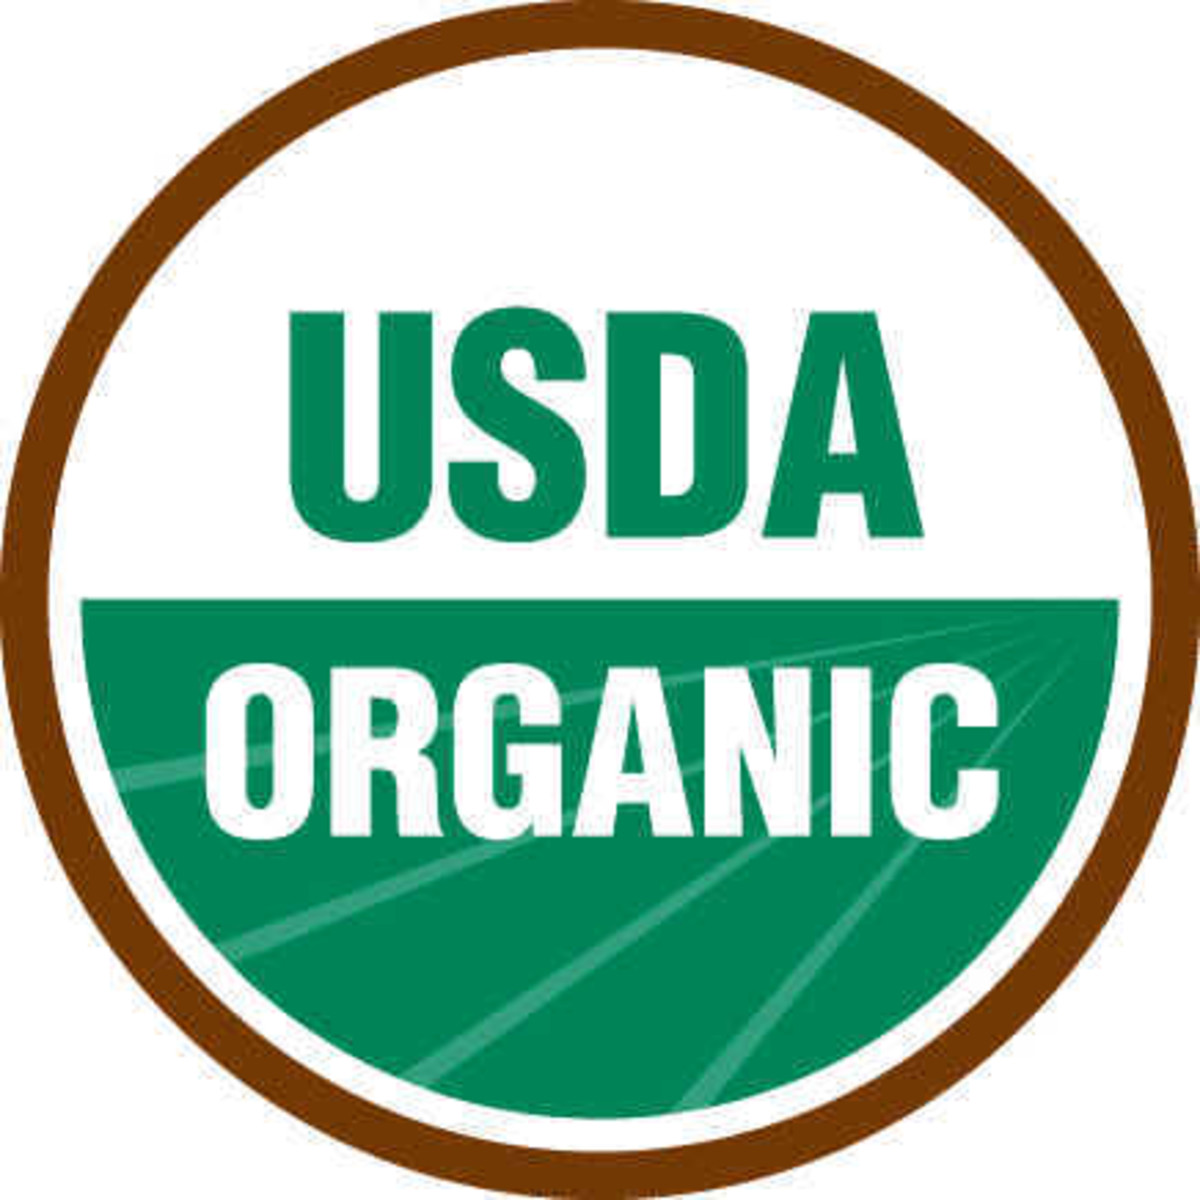 The United States official organic symbol.